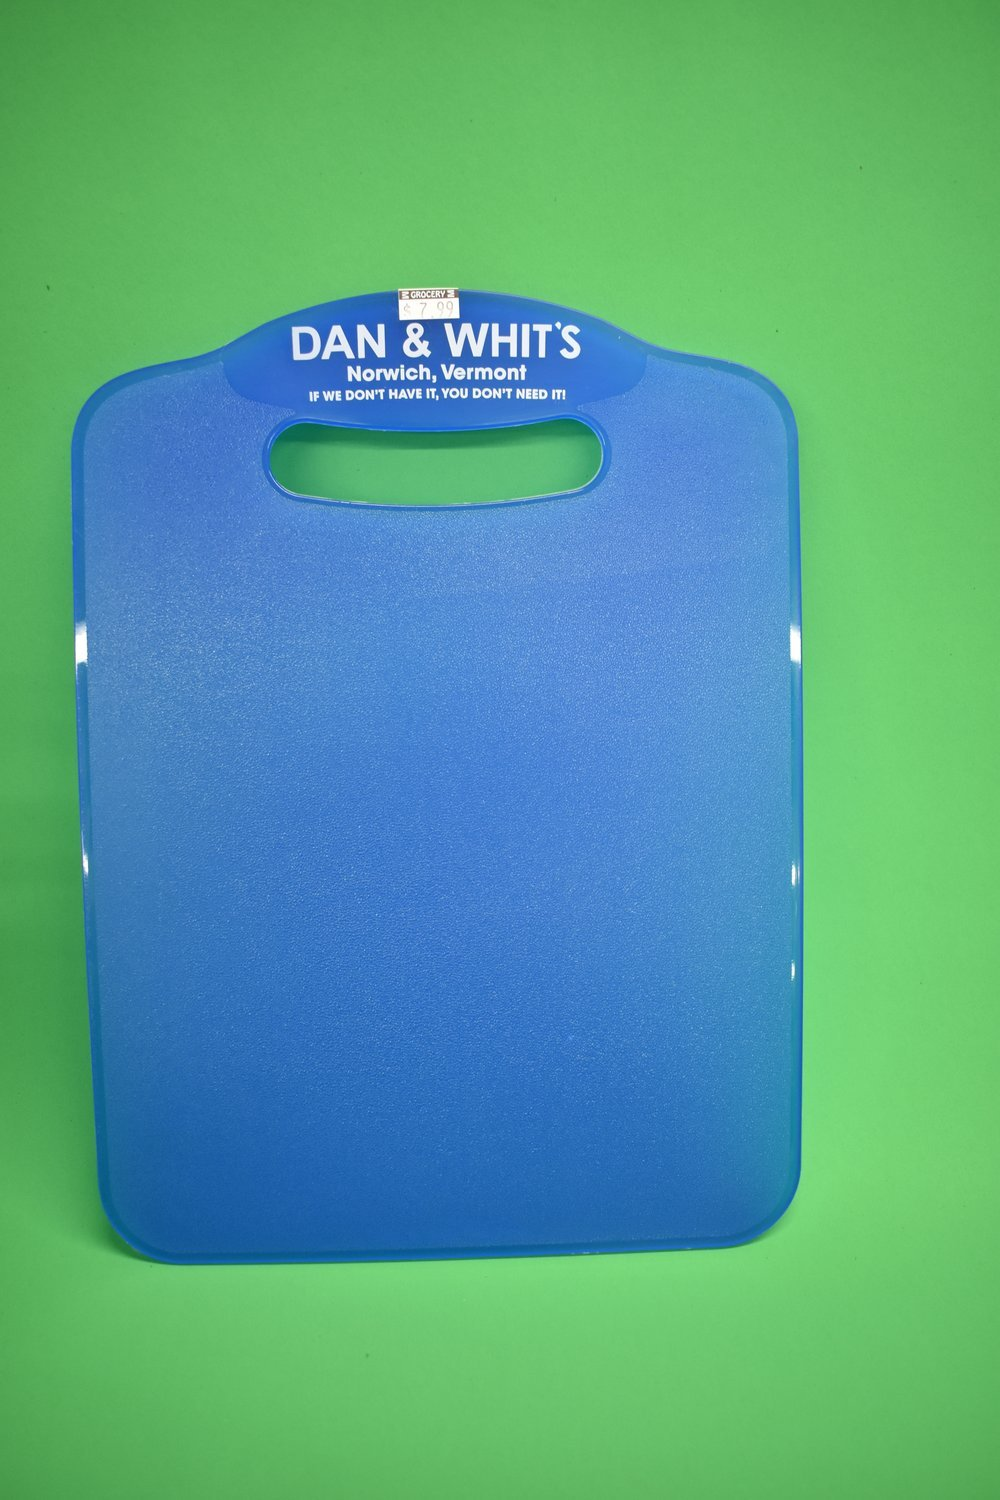 Dan & Whit's Cutting Board